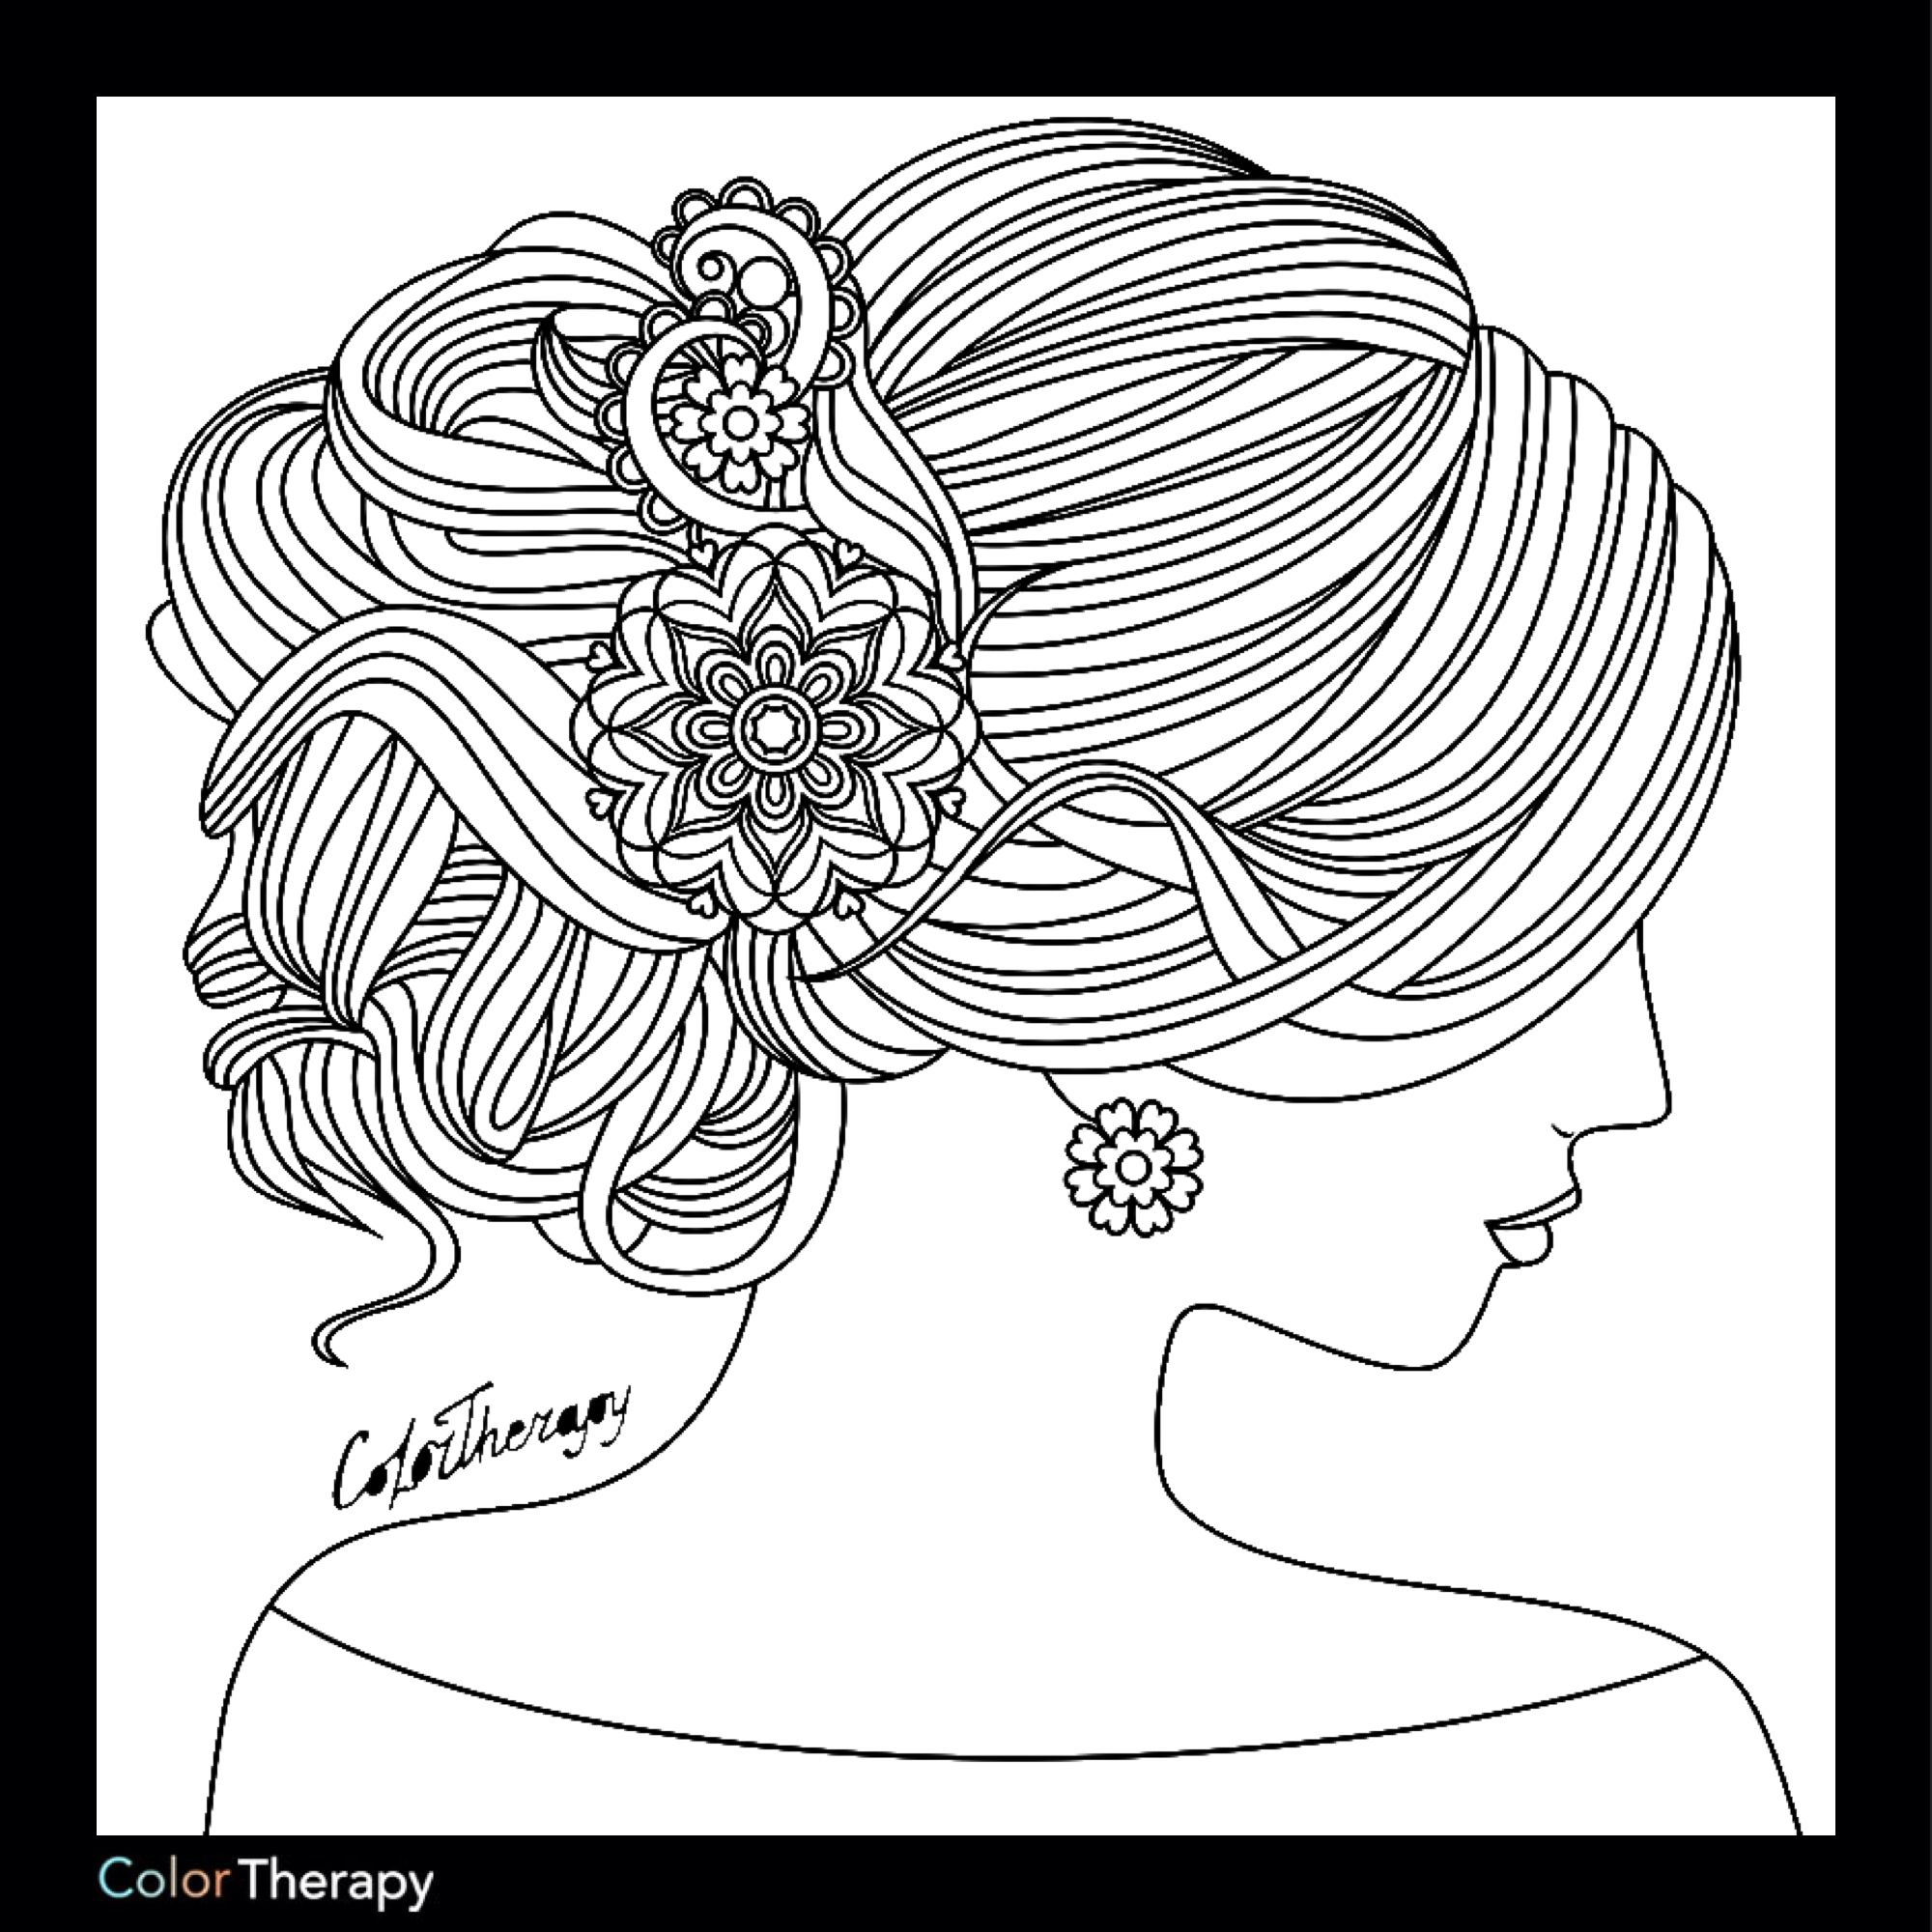 Colortherapy Coloring Pages Coloring Books Designs Coloring Books